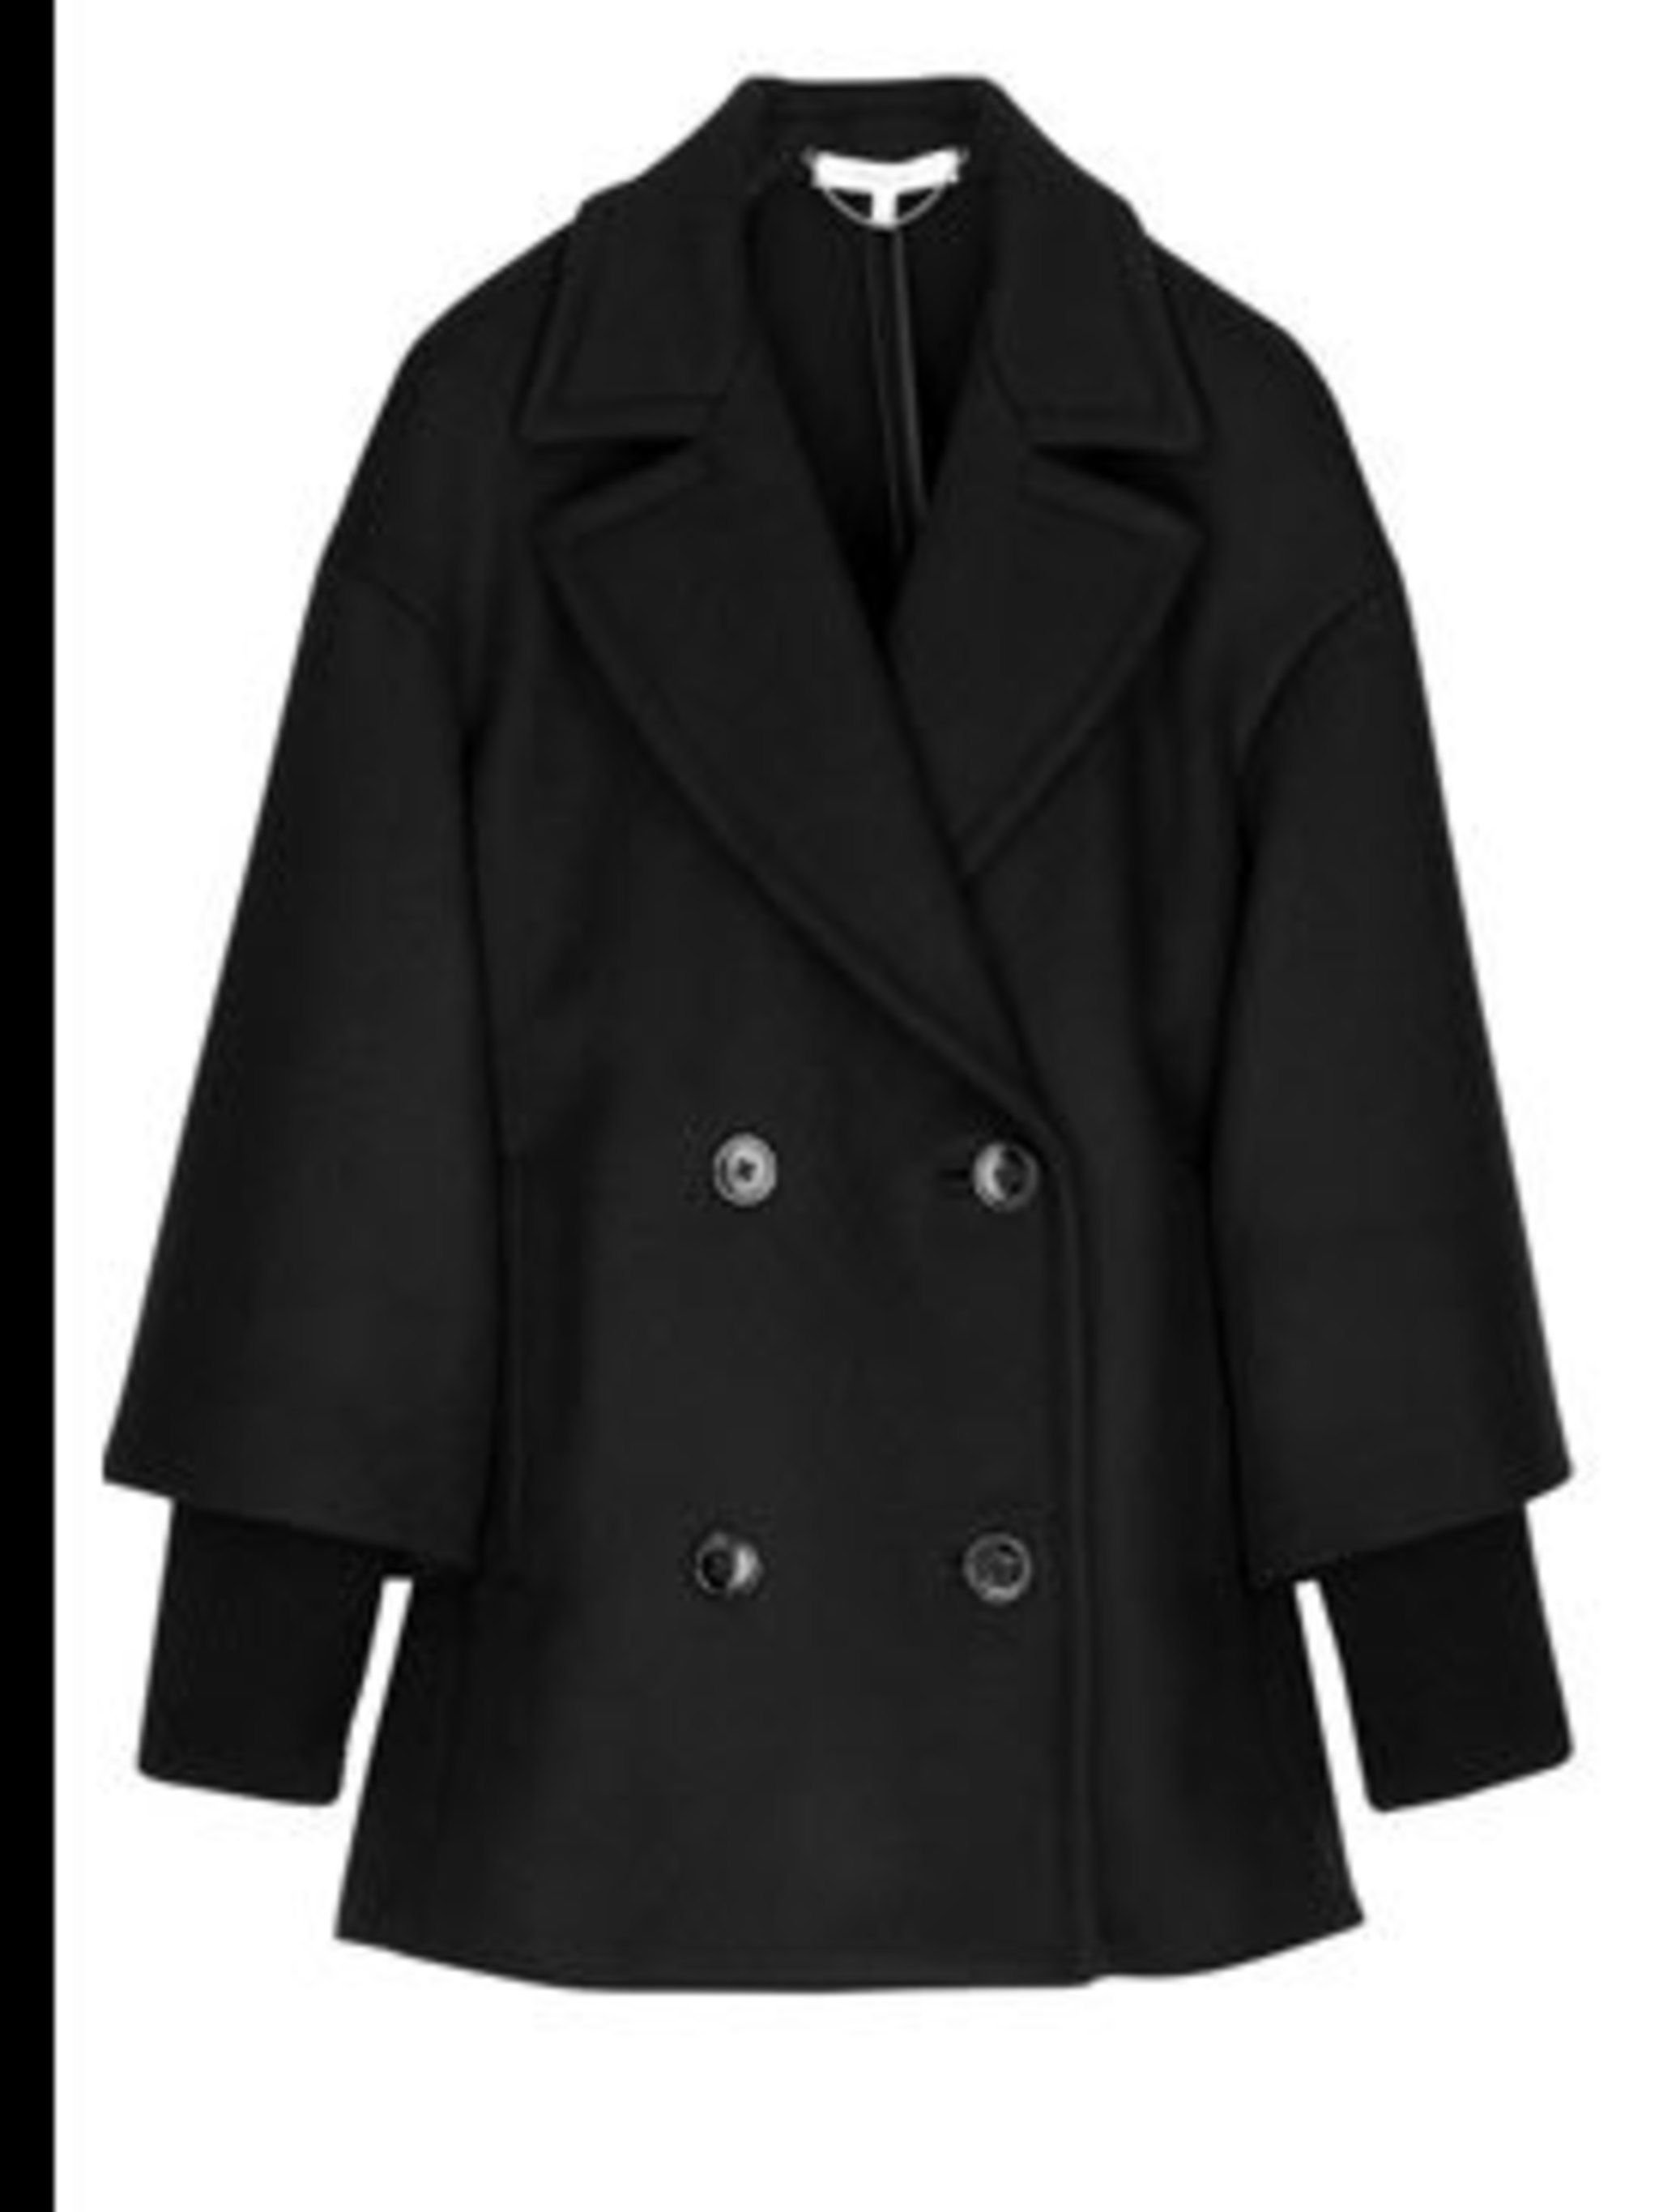 """<p>Black coat, £465, by Vanessa Bruno at <a href=""""http://www.net-a-porter.com/product/46218"""">Net-a-Porter</a></p>"""